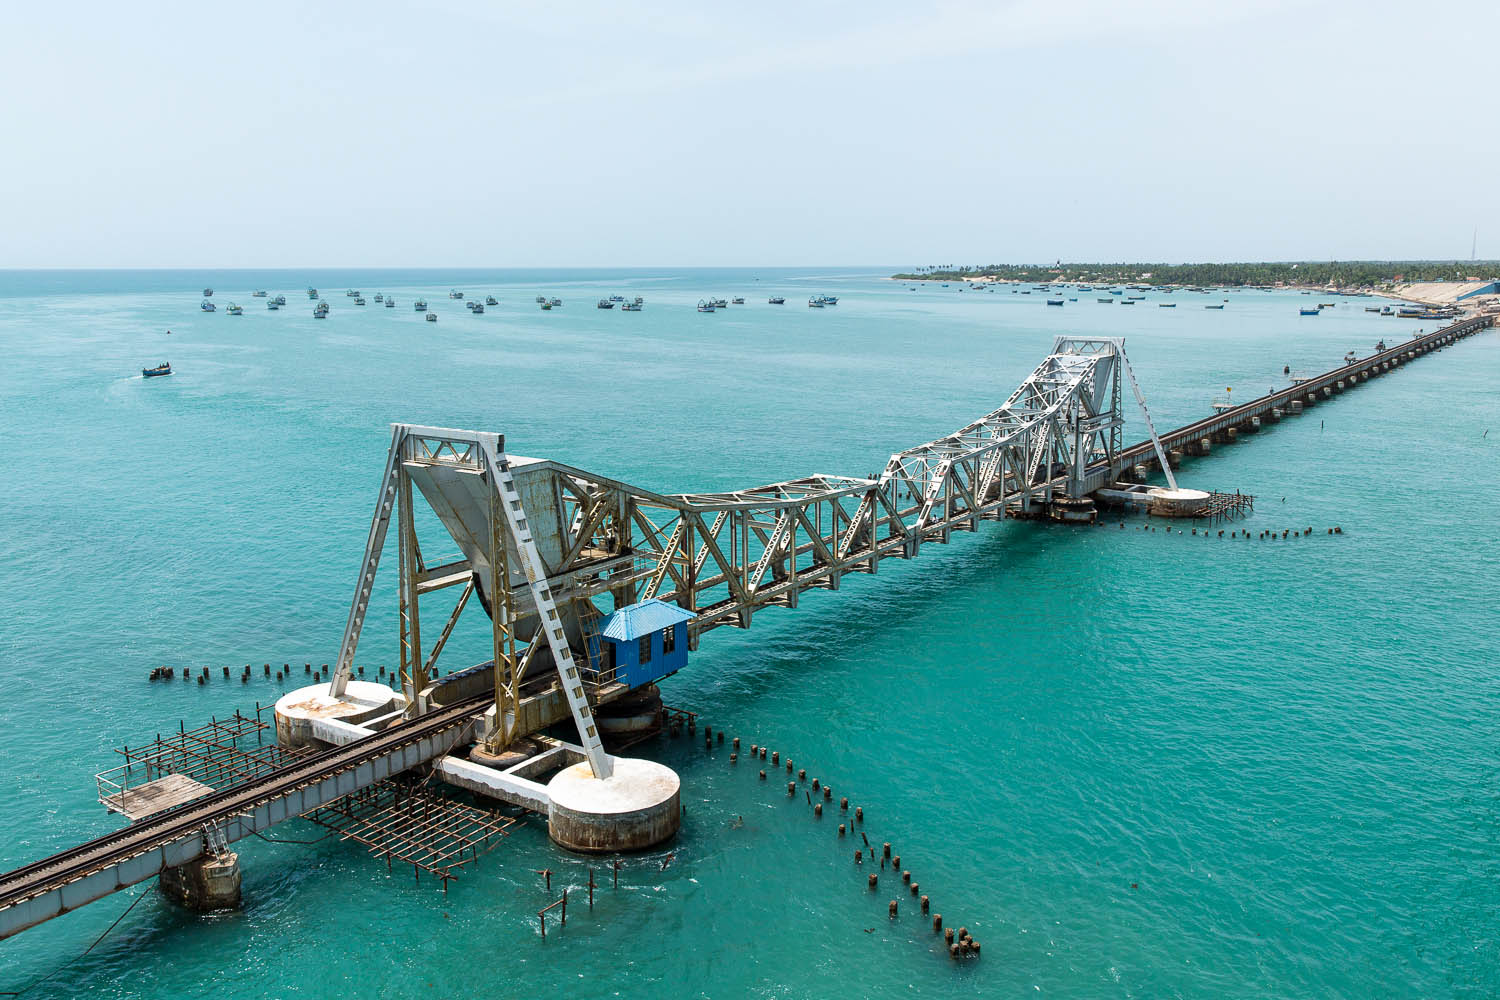 The railway bridge was the first bridge to connect Pamban Island to the mainland.